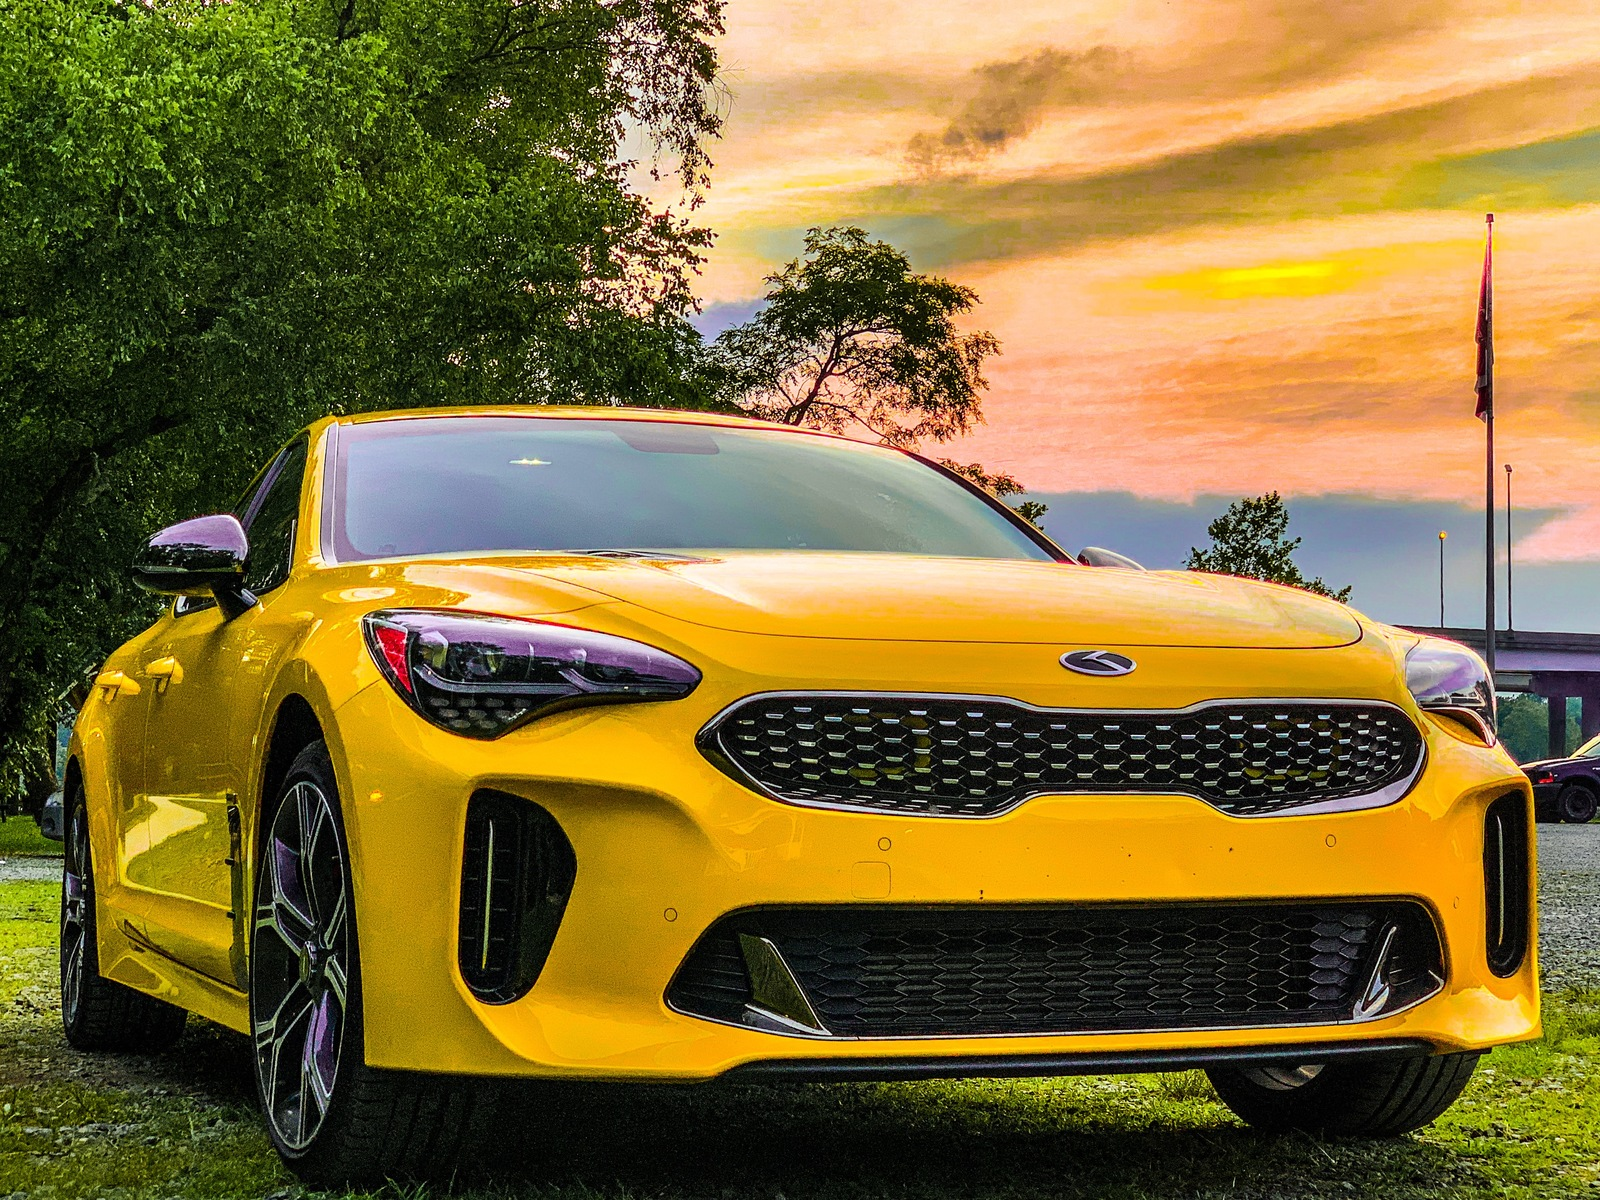 Sunset Yellow 2018 Kia Stinger GT (Limited Edition) AWD